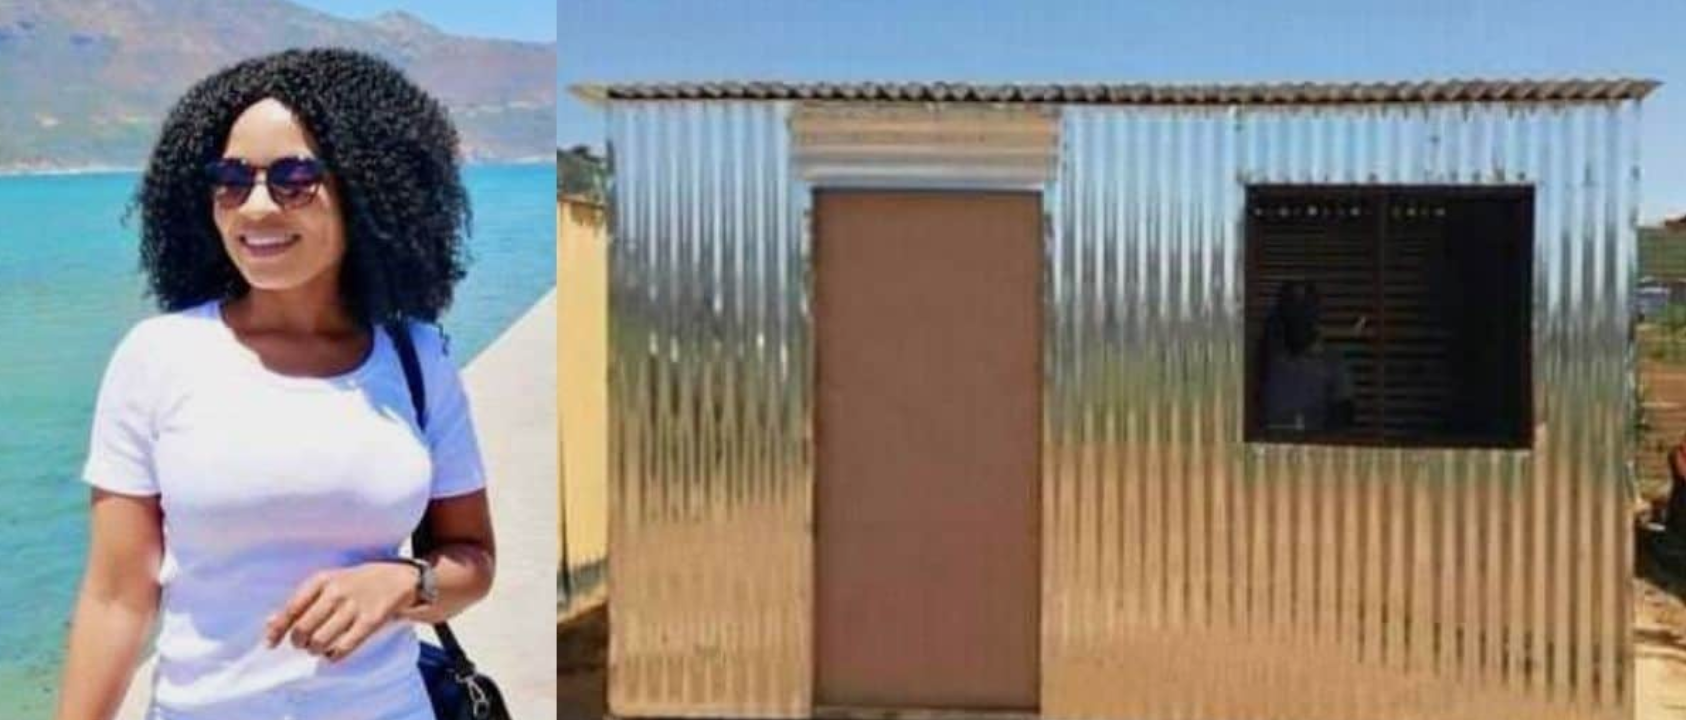 A South African Lady Trends On Twitter As Showing Off Her Newly Built House